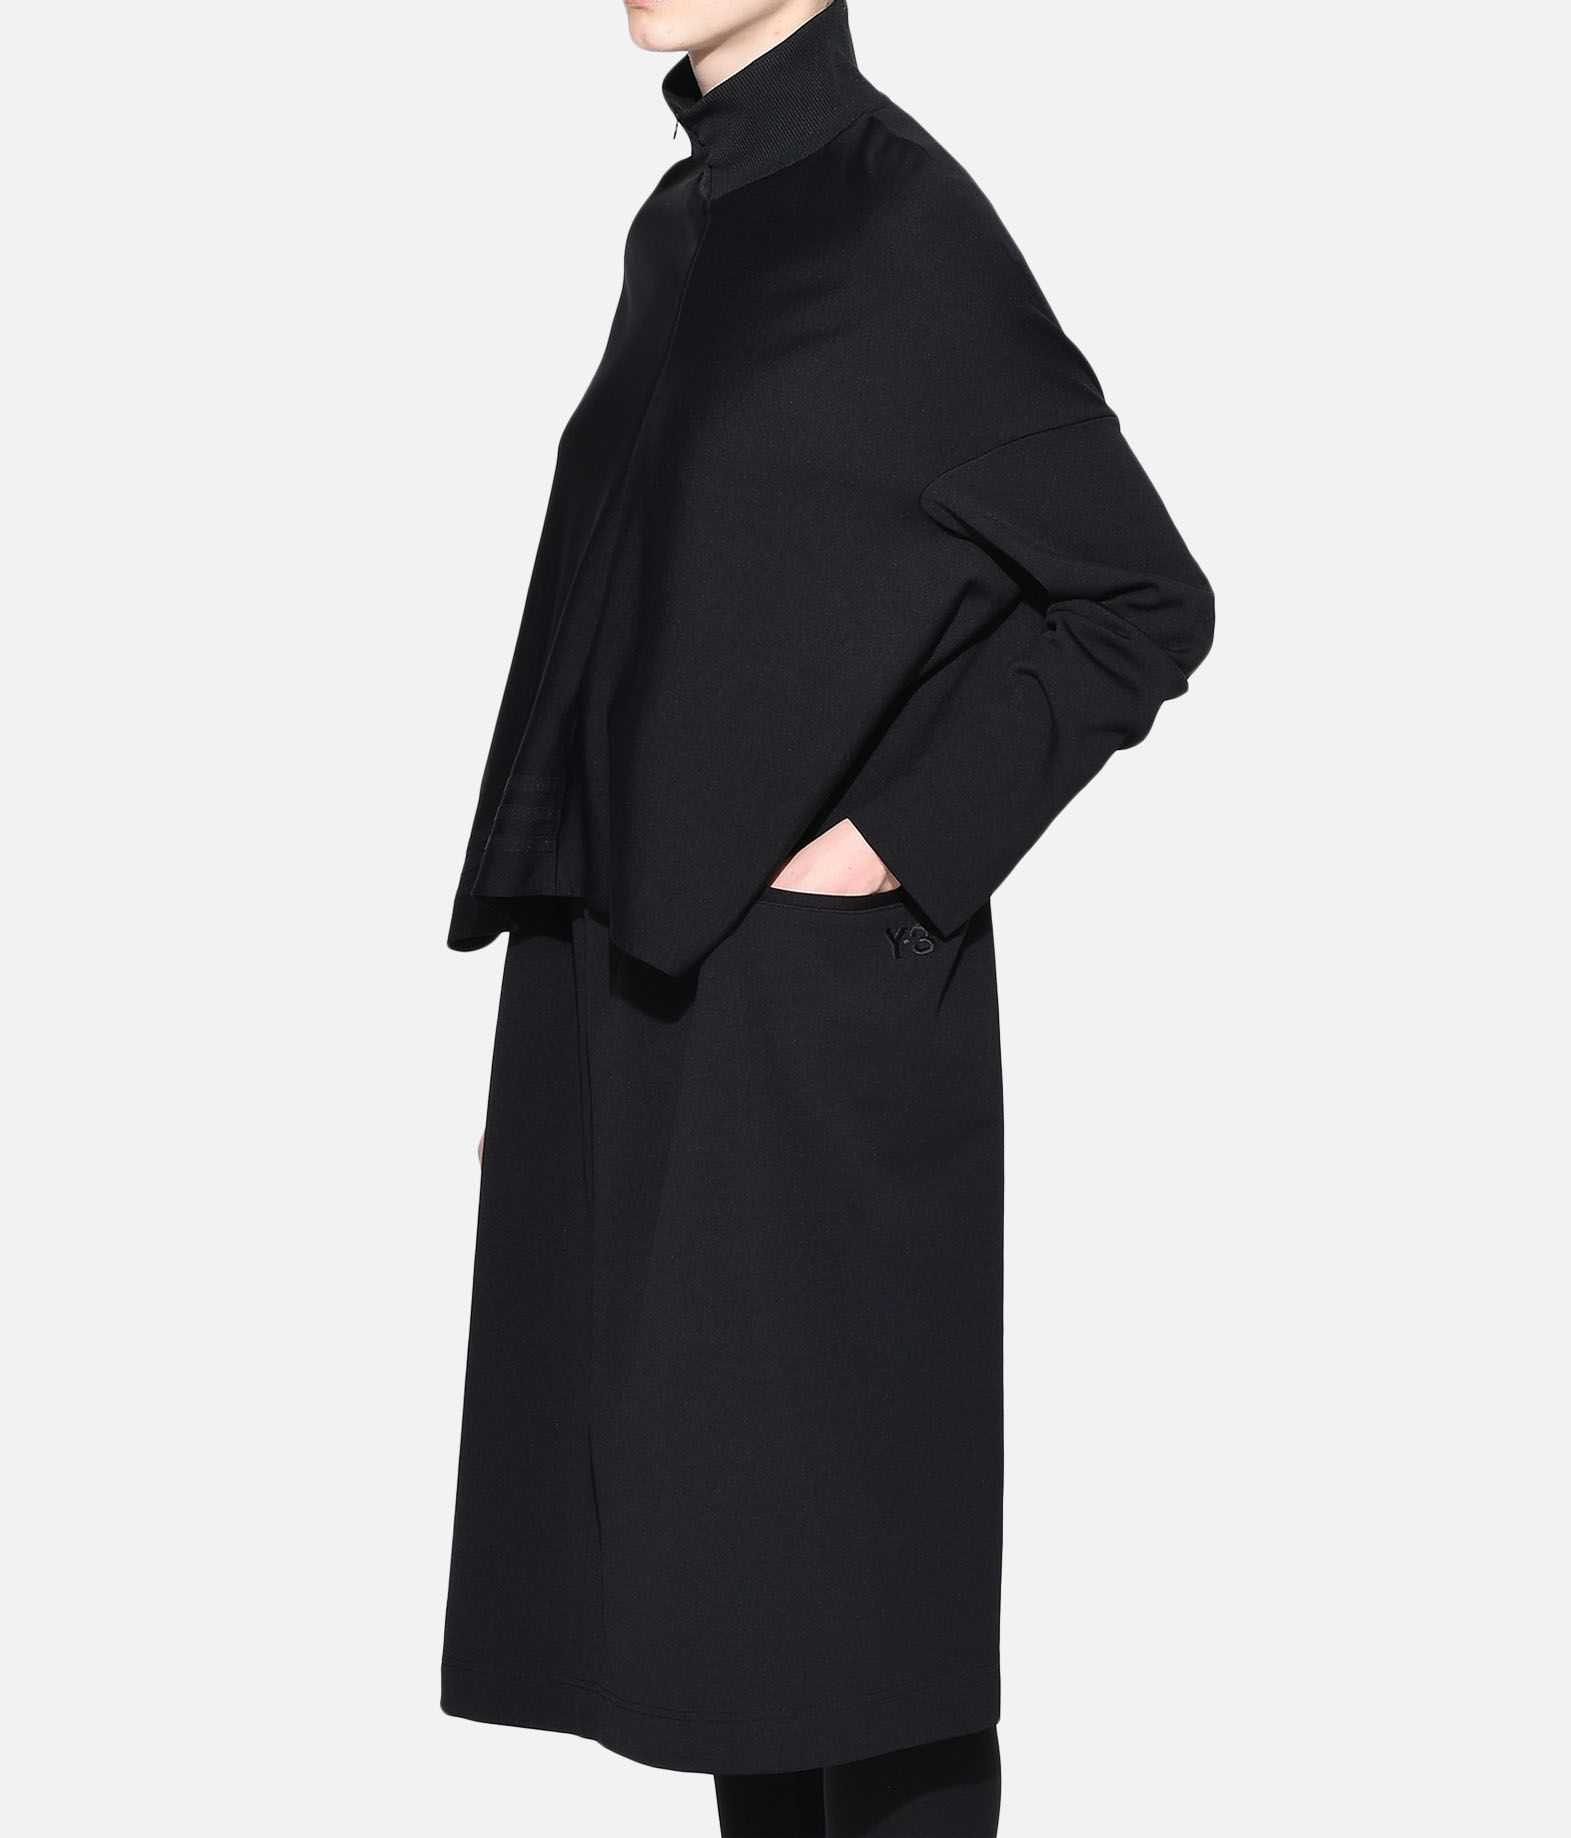 Y-3 Y-3 Matte Track Dress Robe mi-longue Femme e